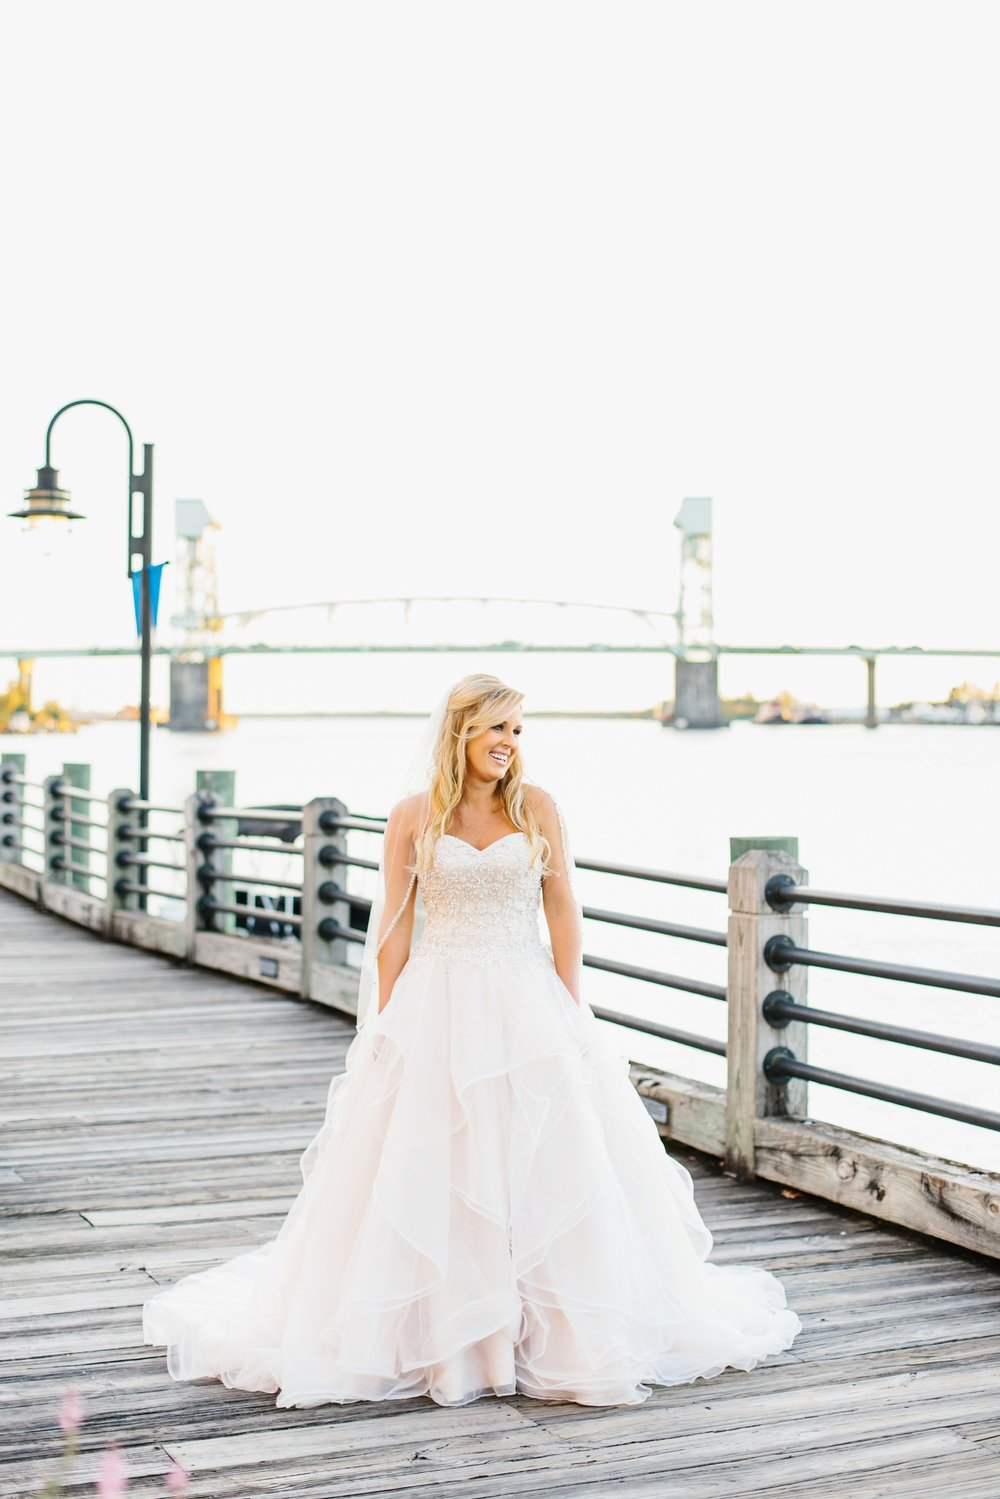 bakery-105-downtown-wilmington-north-carolina-bridal-session-samantha_0045.jpg